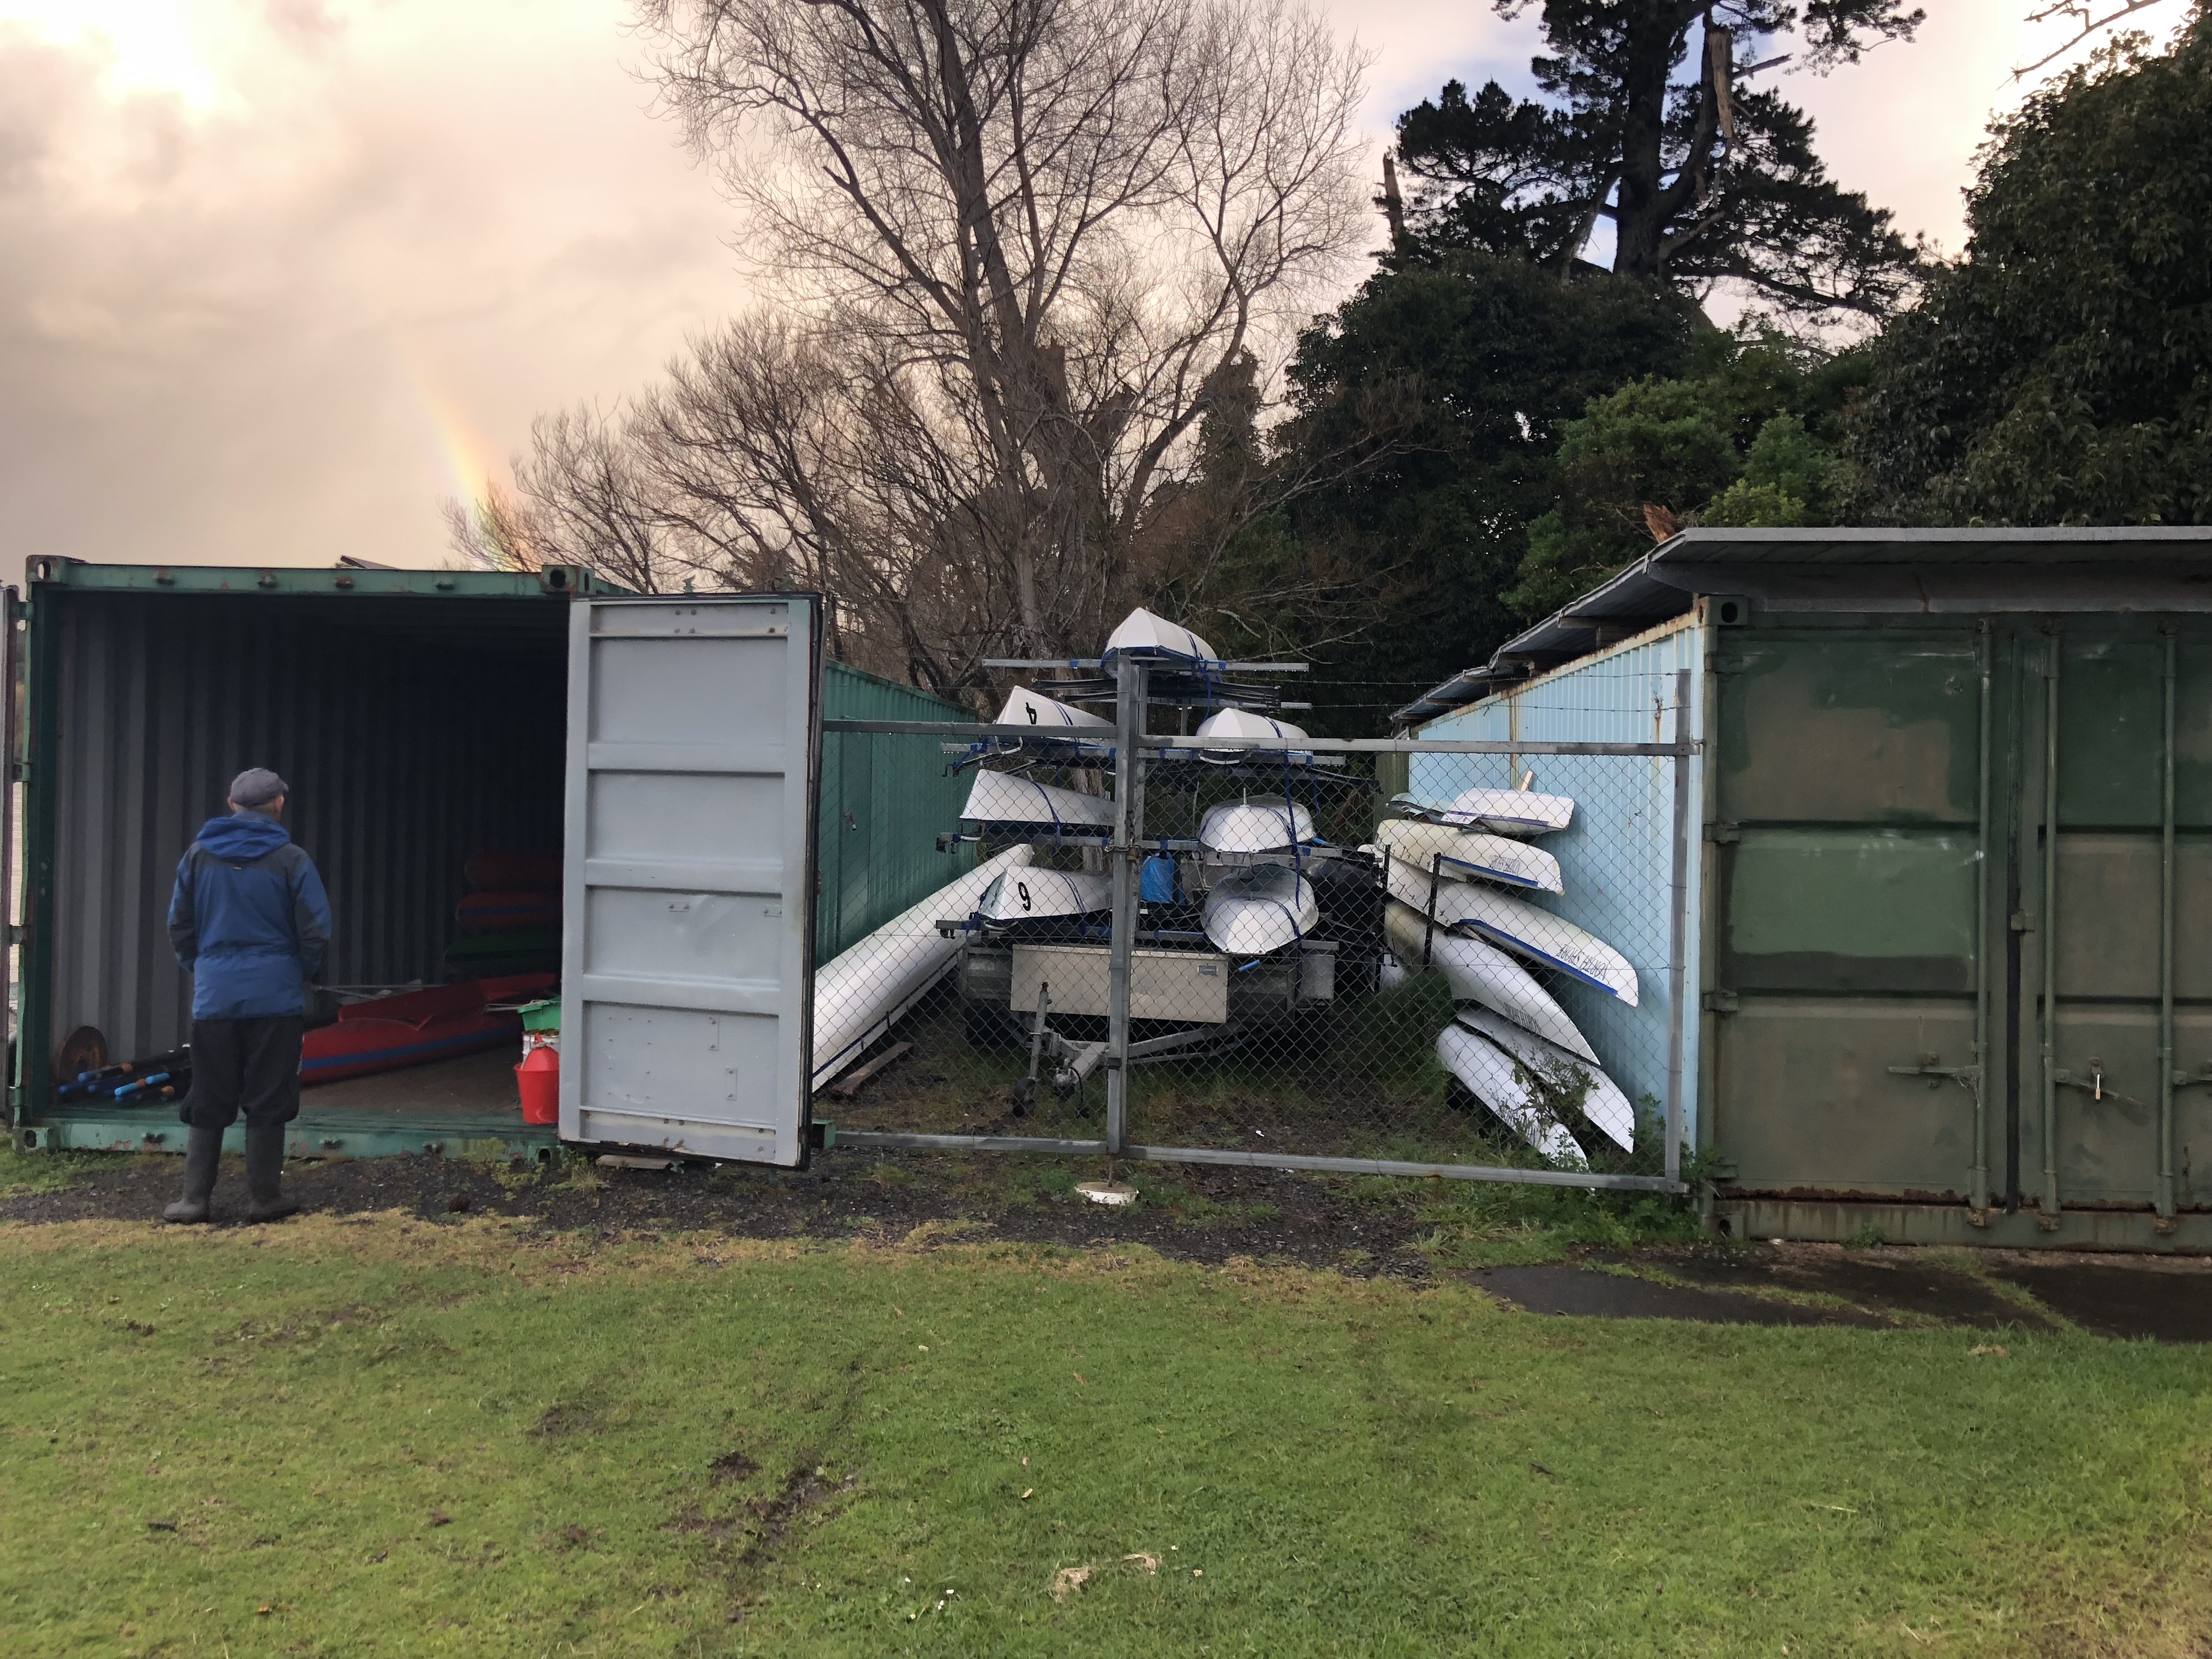 rowing boat storage, container storage for boats,